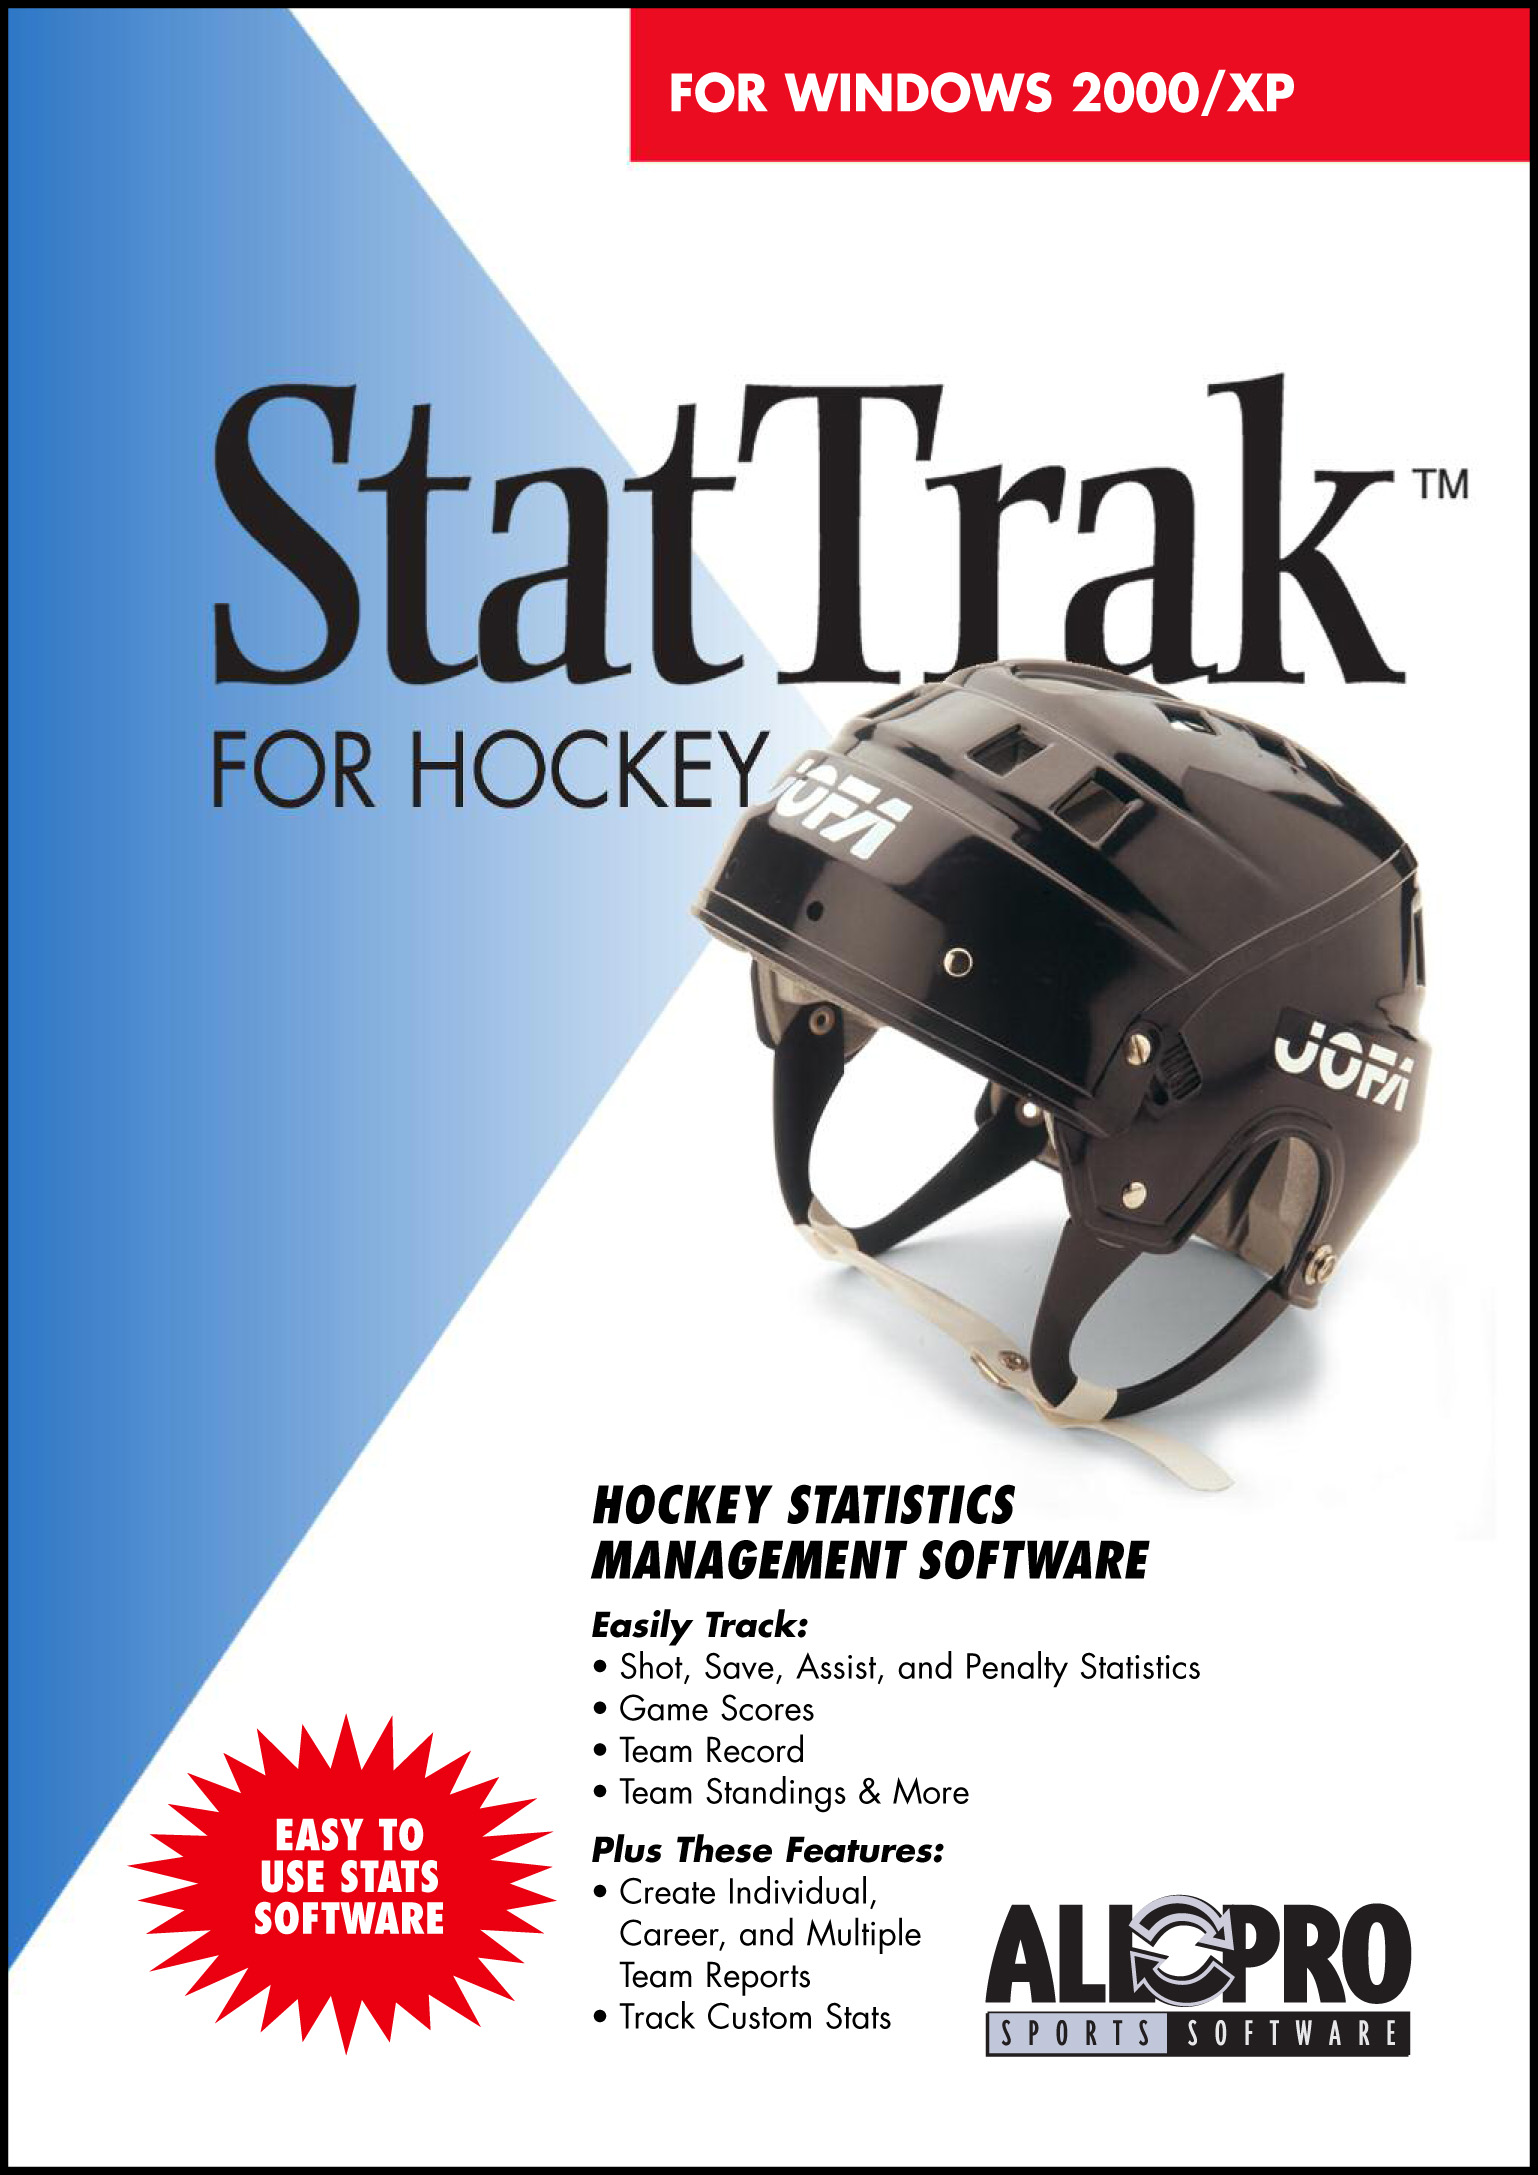 StatTrak for Hockey